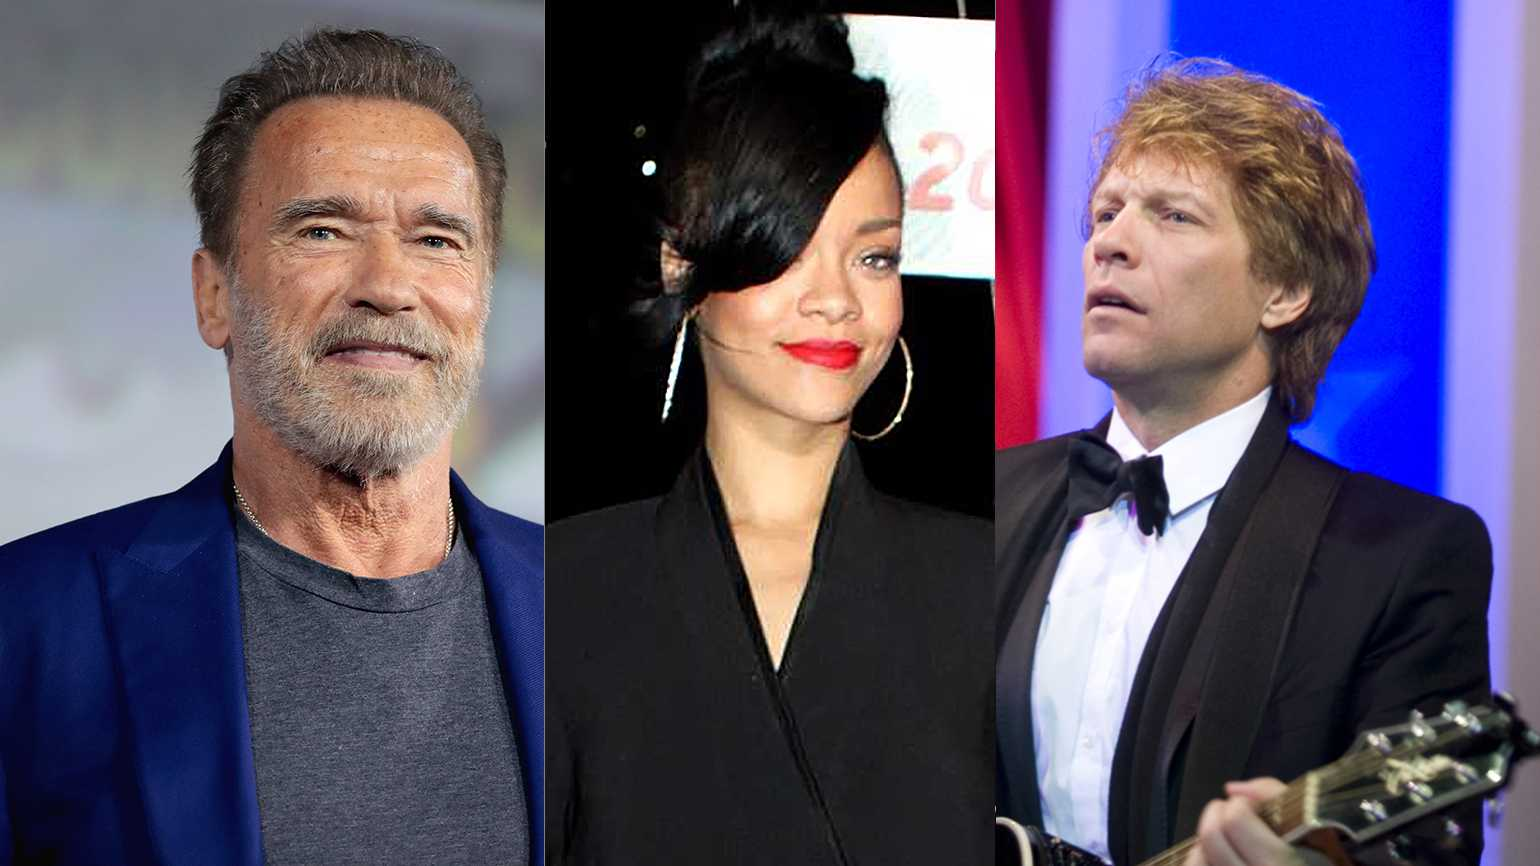 Arnold Schwarzenegger (from left), Rihanna and Jon Bon Jovi